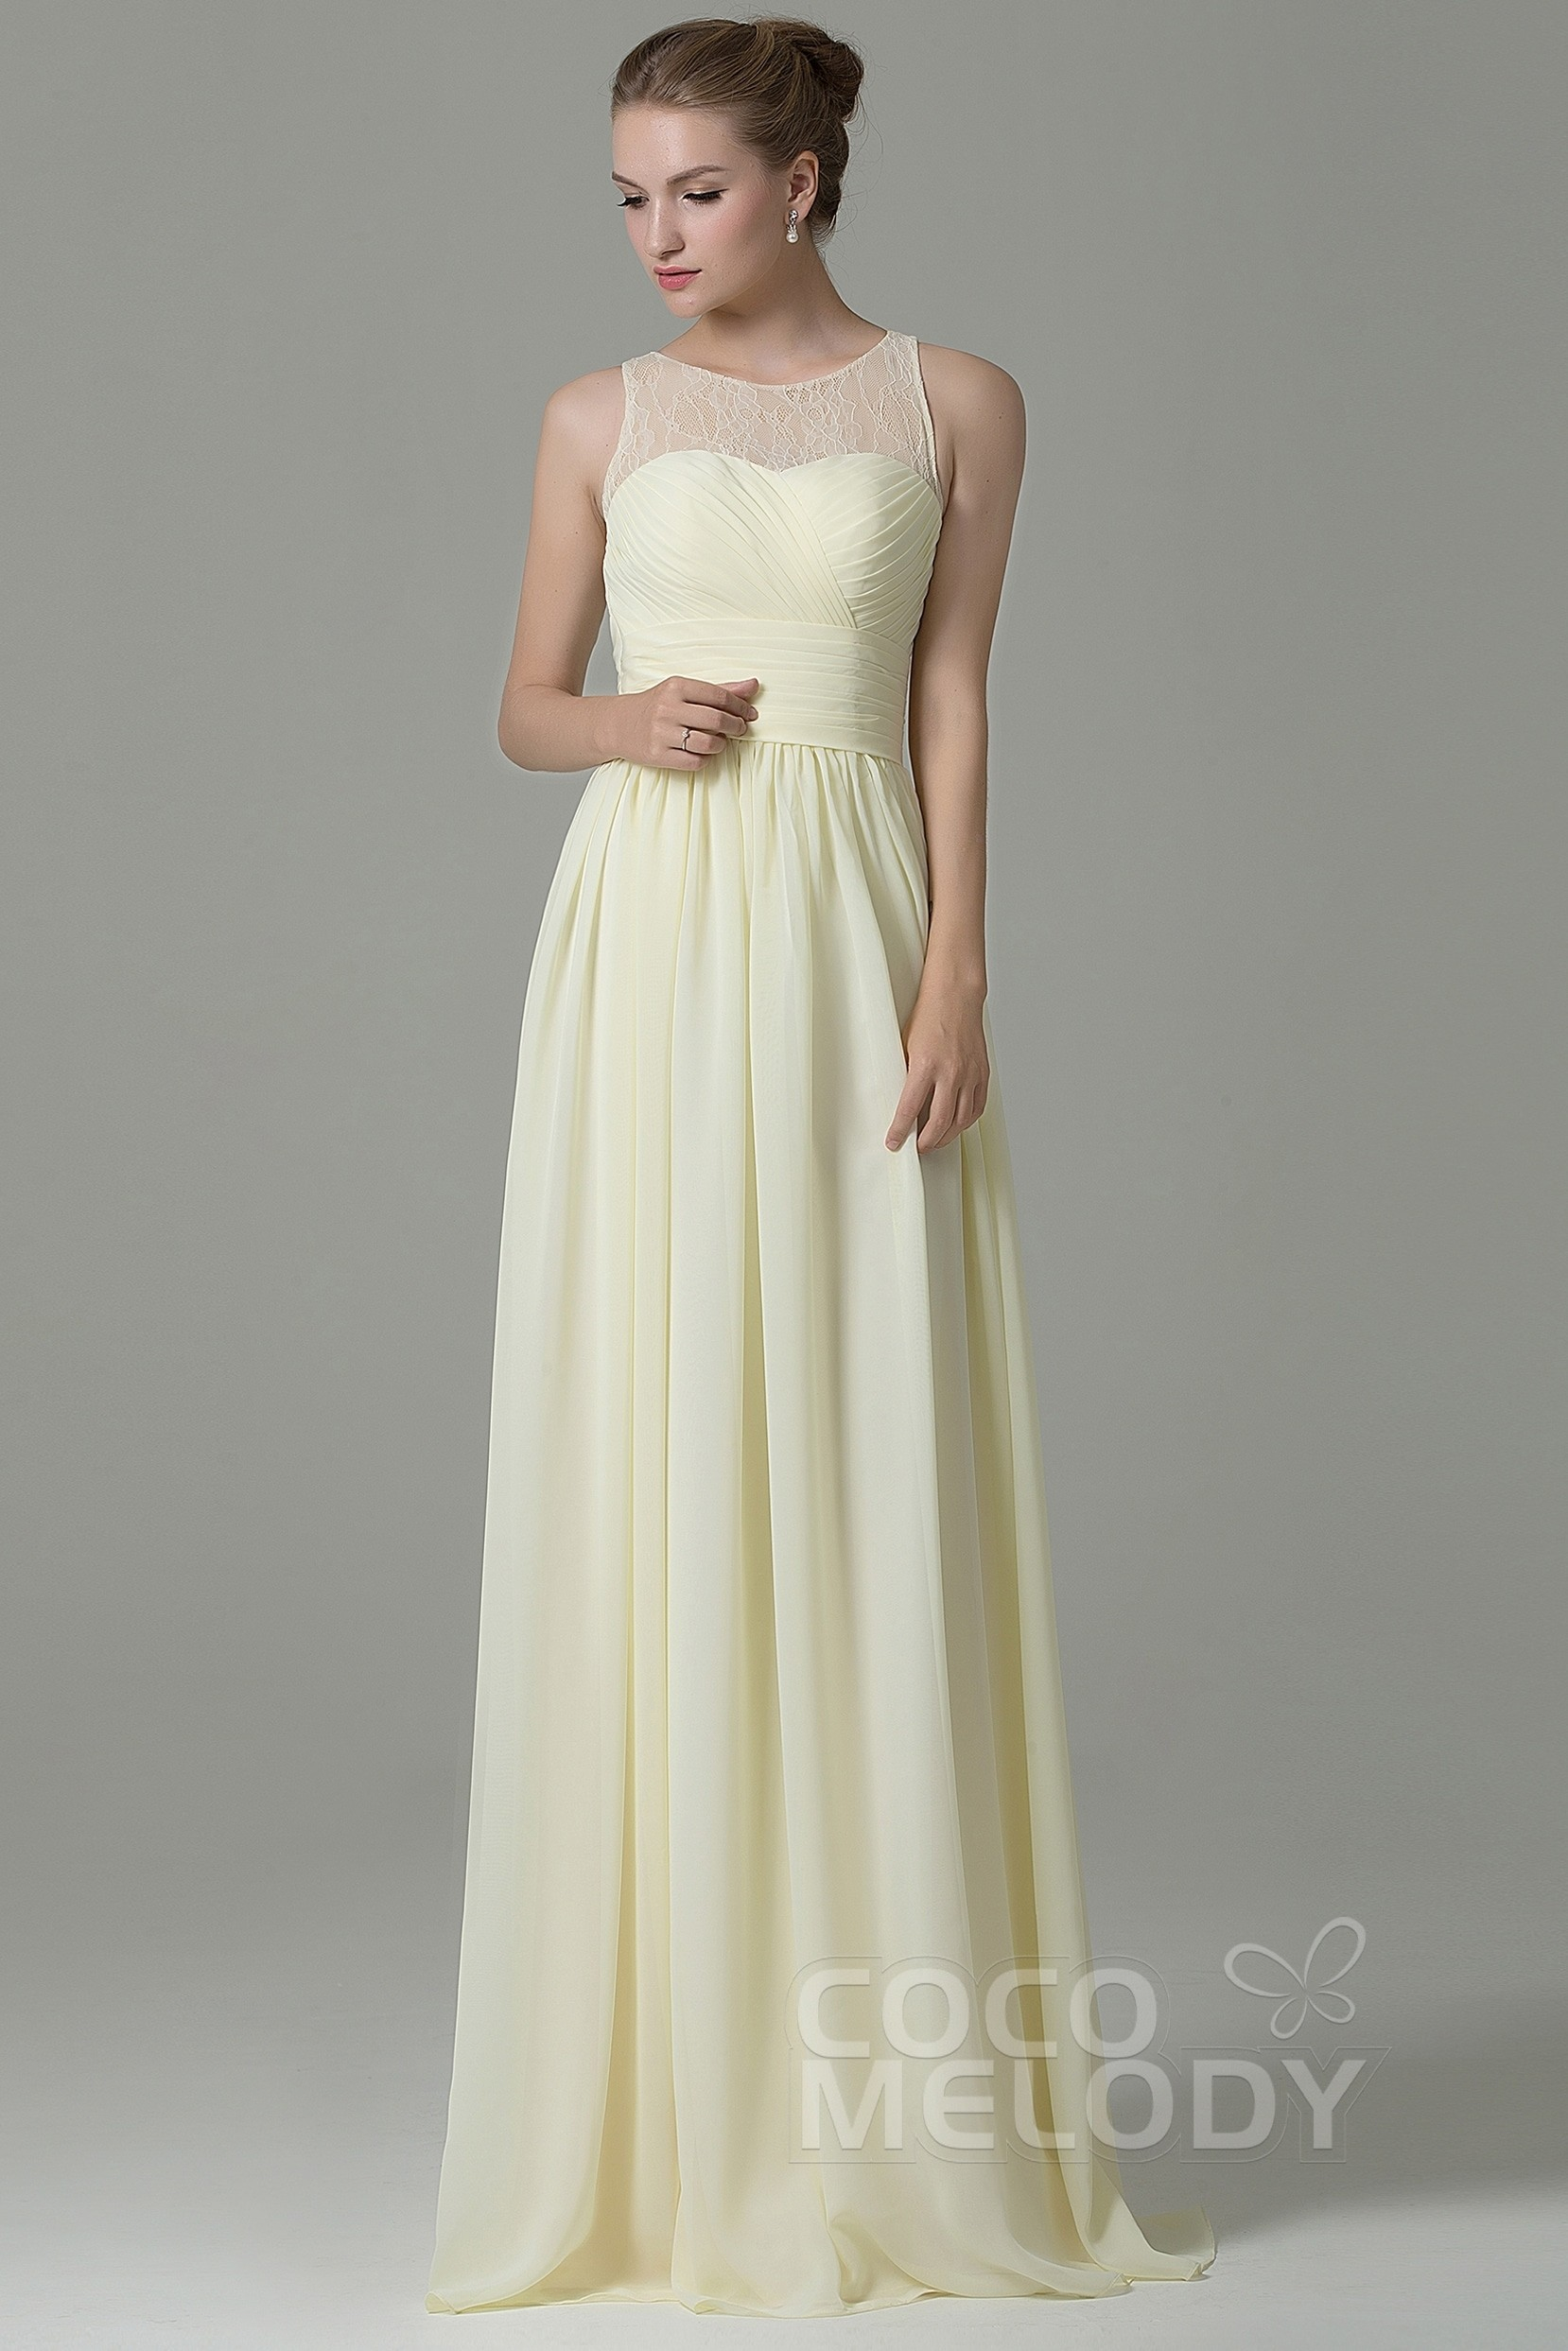 Hot Sheath Column Illusion Natural Floor Length Lace Chiffon Sleeveless Zipper Bridesmaid Dress Cozk16005